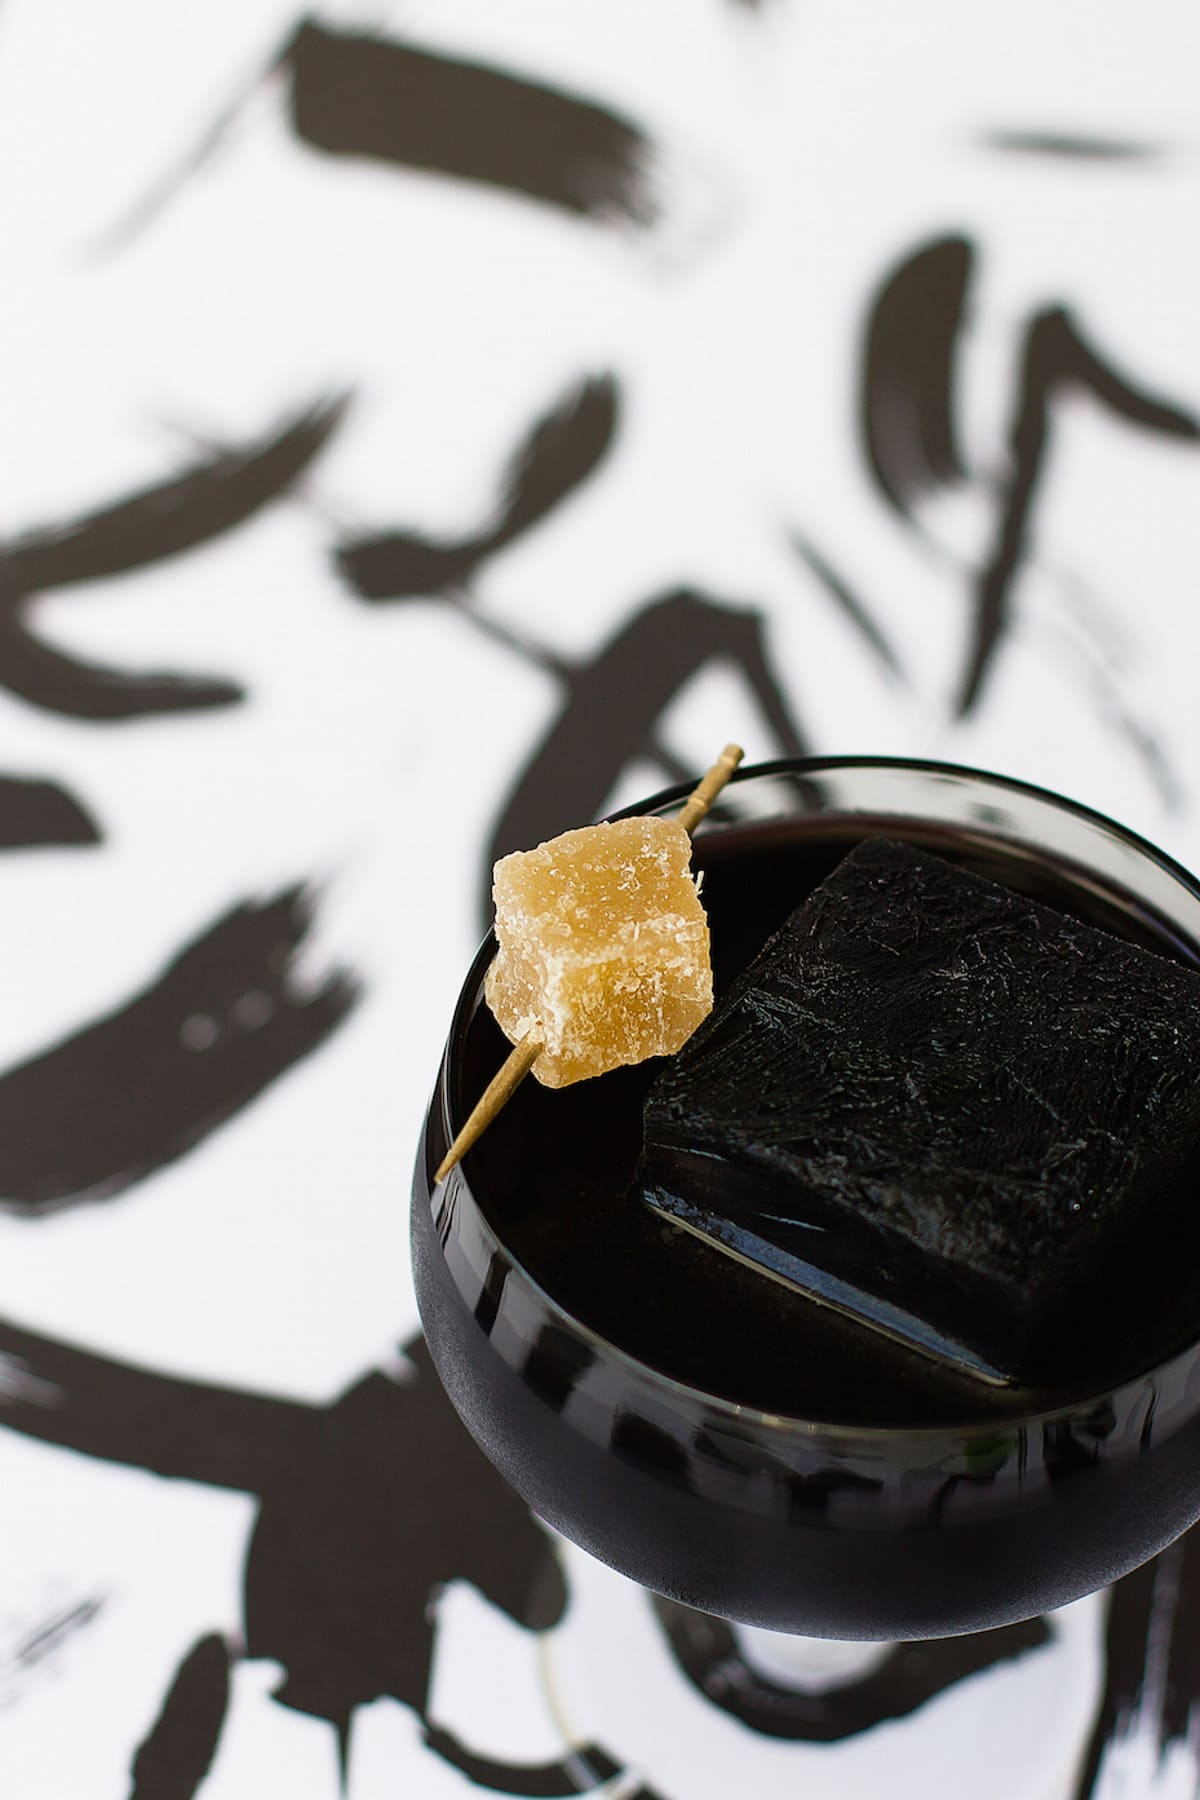 garnished with ginger.. Detoxing Activated Charcoal Cocktail Recipe by top Houston Lifestyle Blogger Ashley Rose of Sugar and Cloth #recipe #cocktail #halloween #detox #charcoal